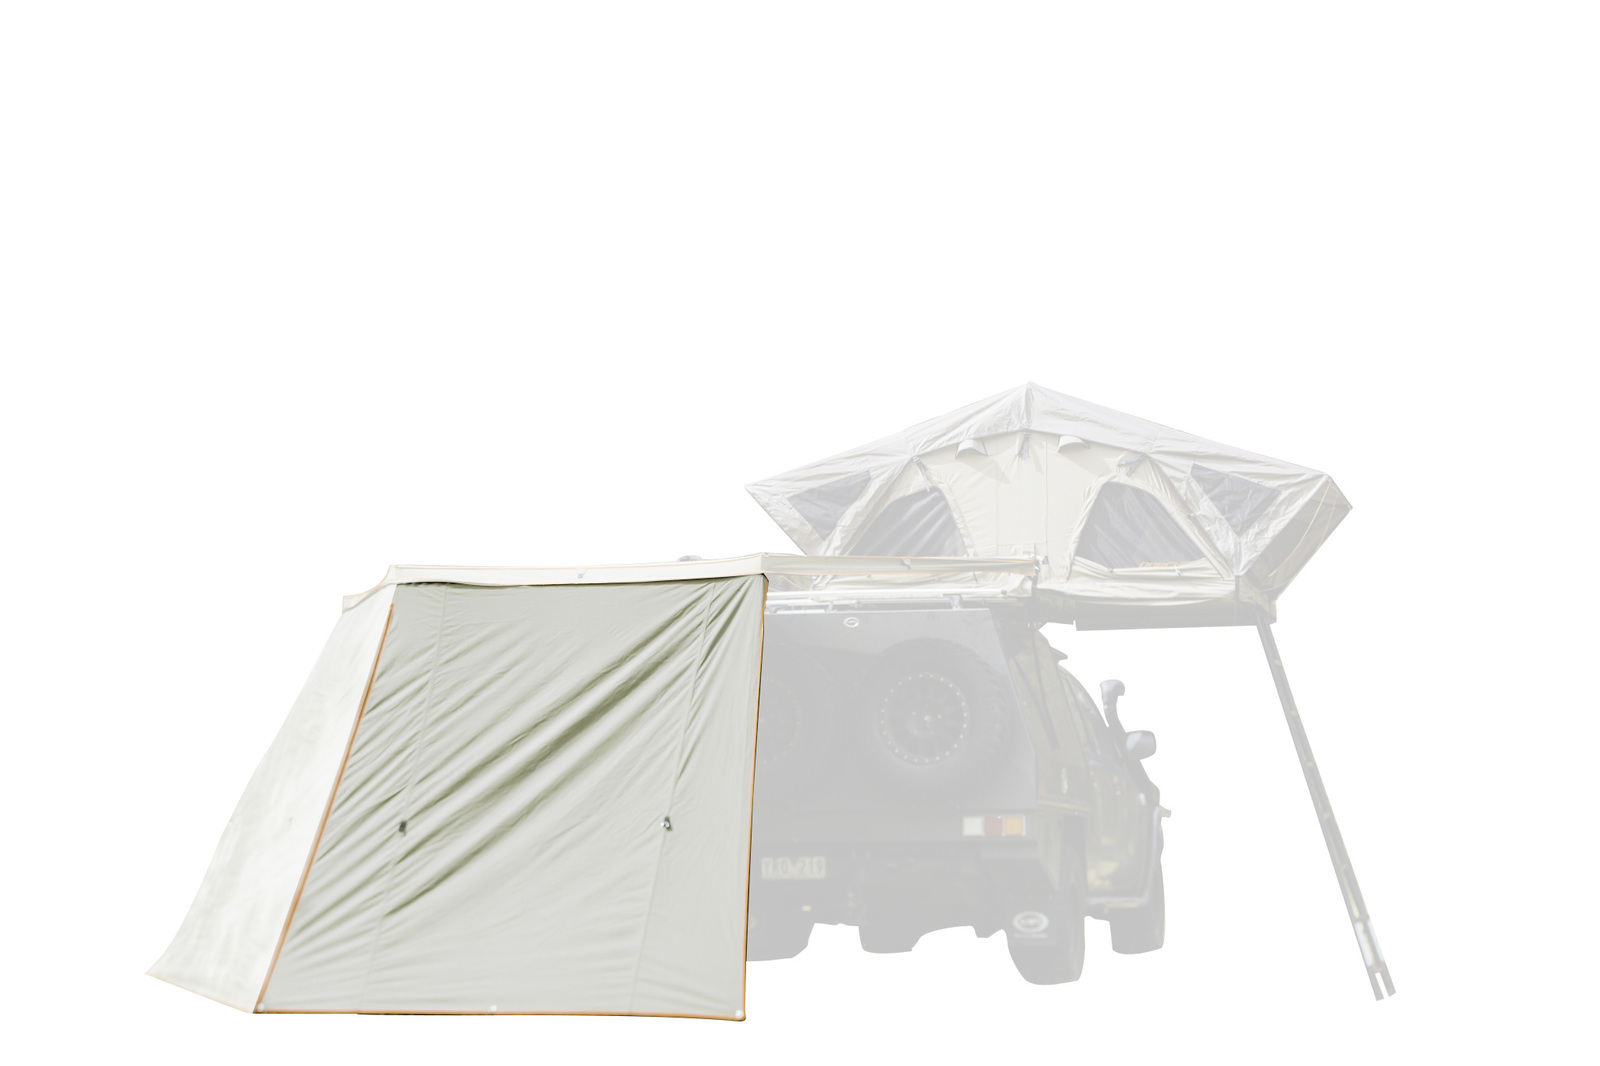 Darche Side Wall For 270 Awning C Tentworld